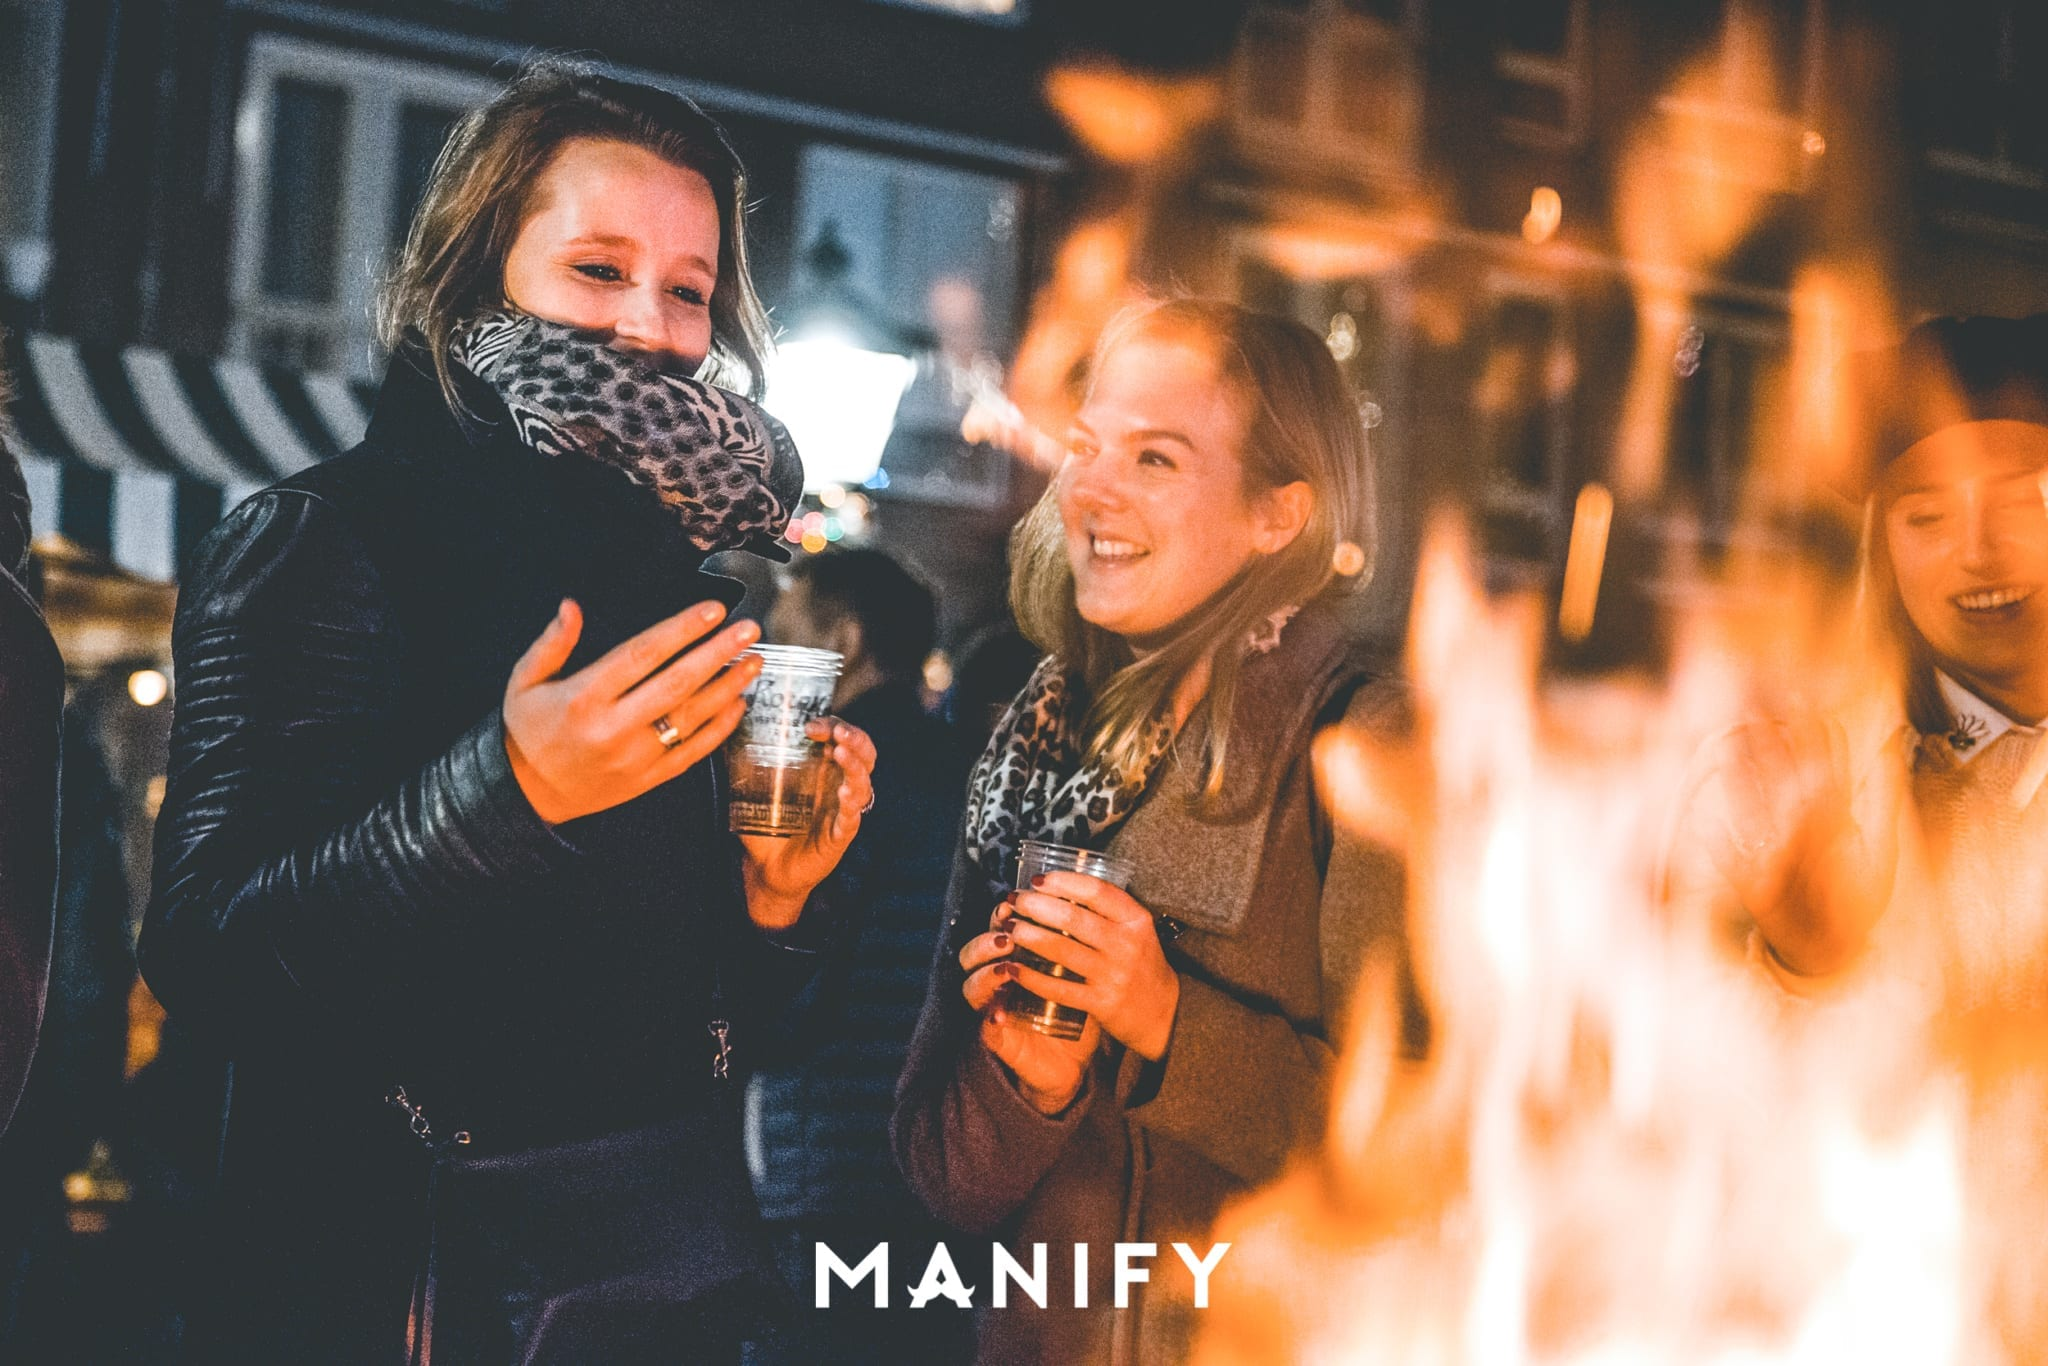 Manify_Out_of_office-E10_WM-56-manify